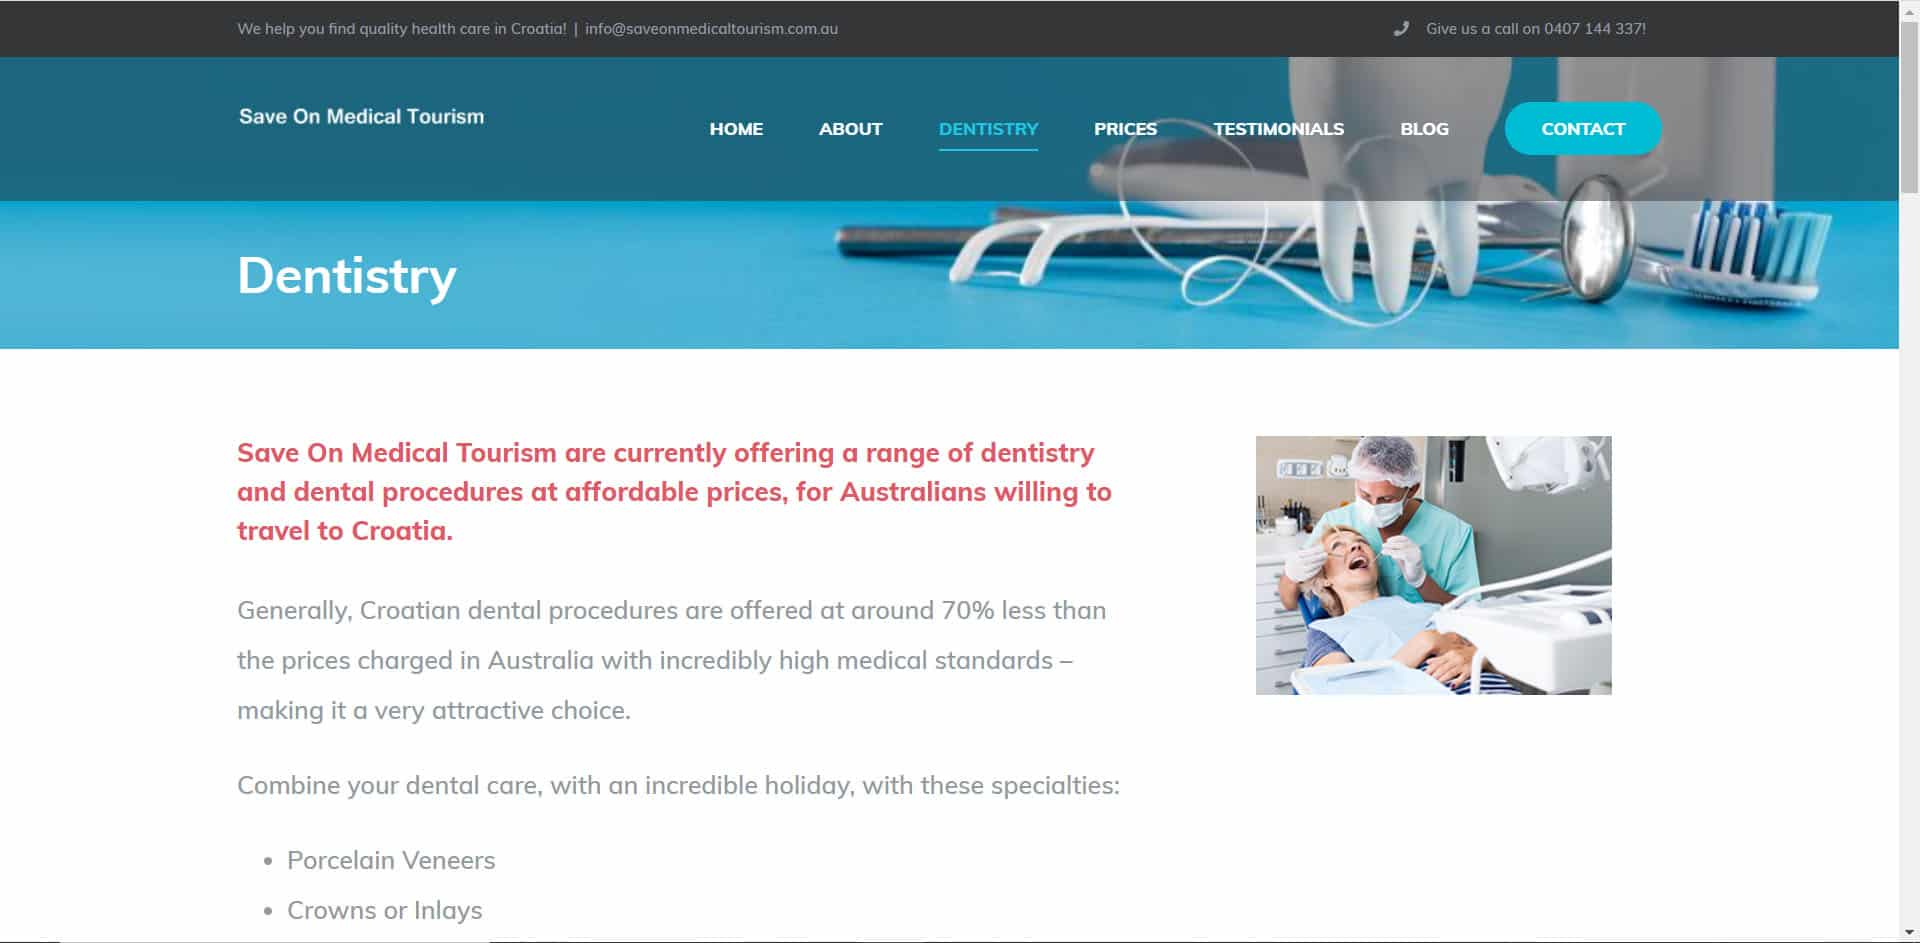 Save on Medical Tourism - Dentistry Page